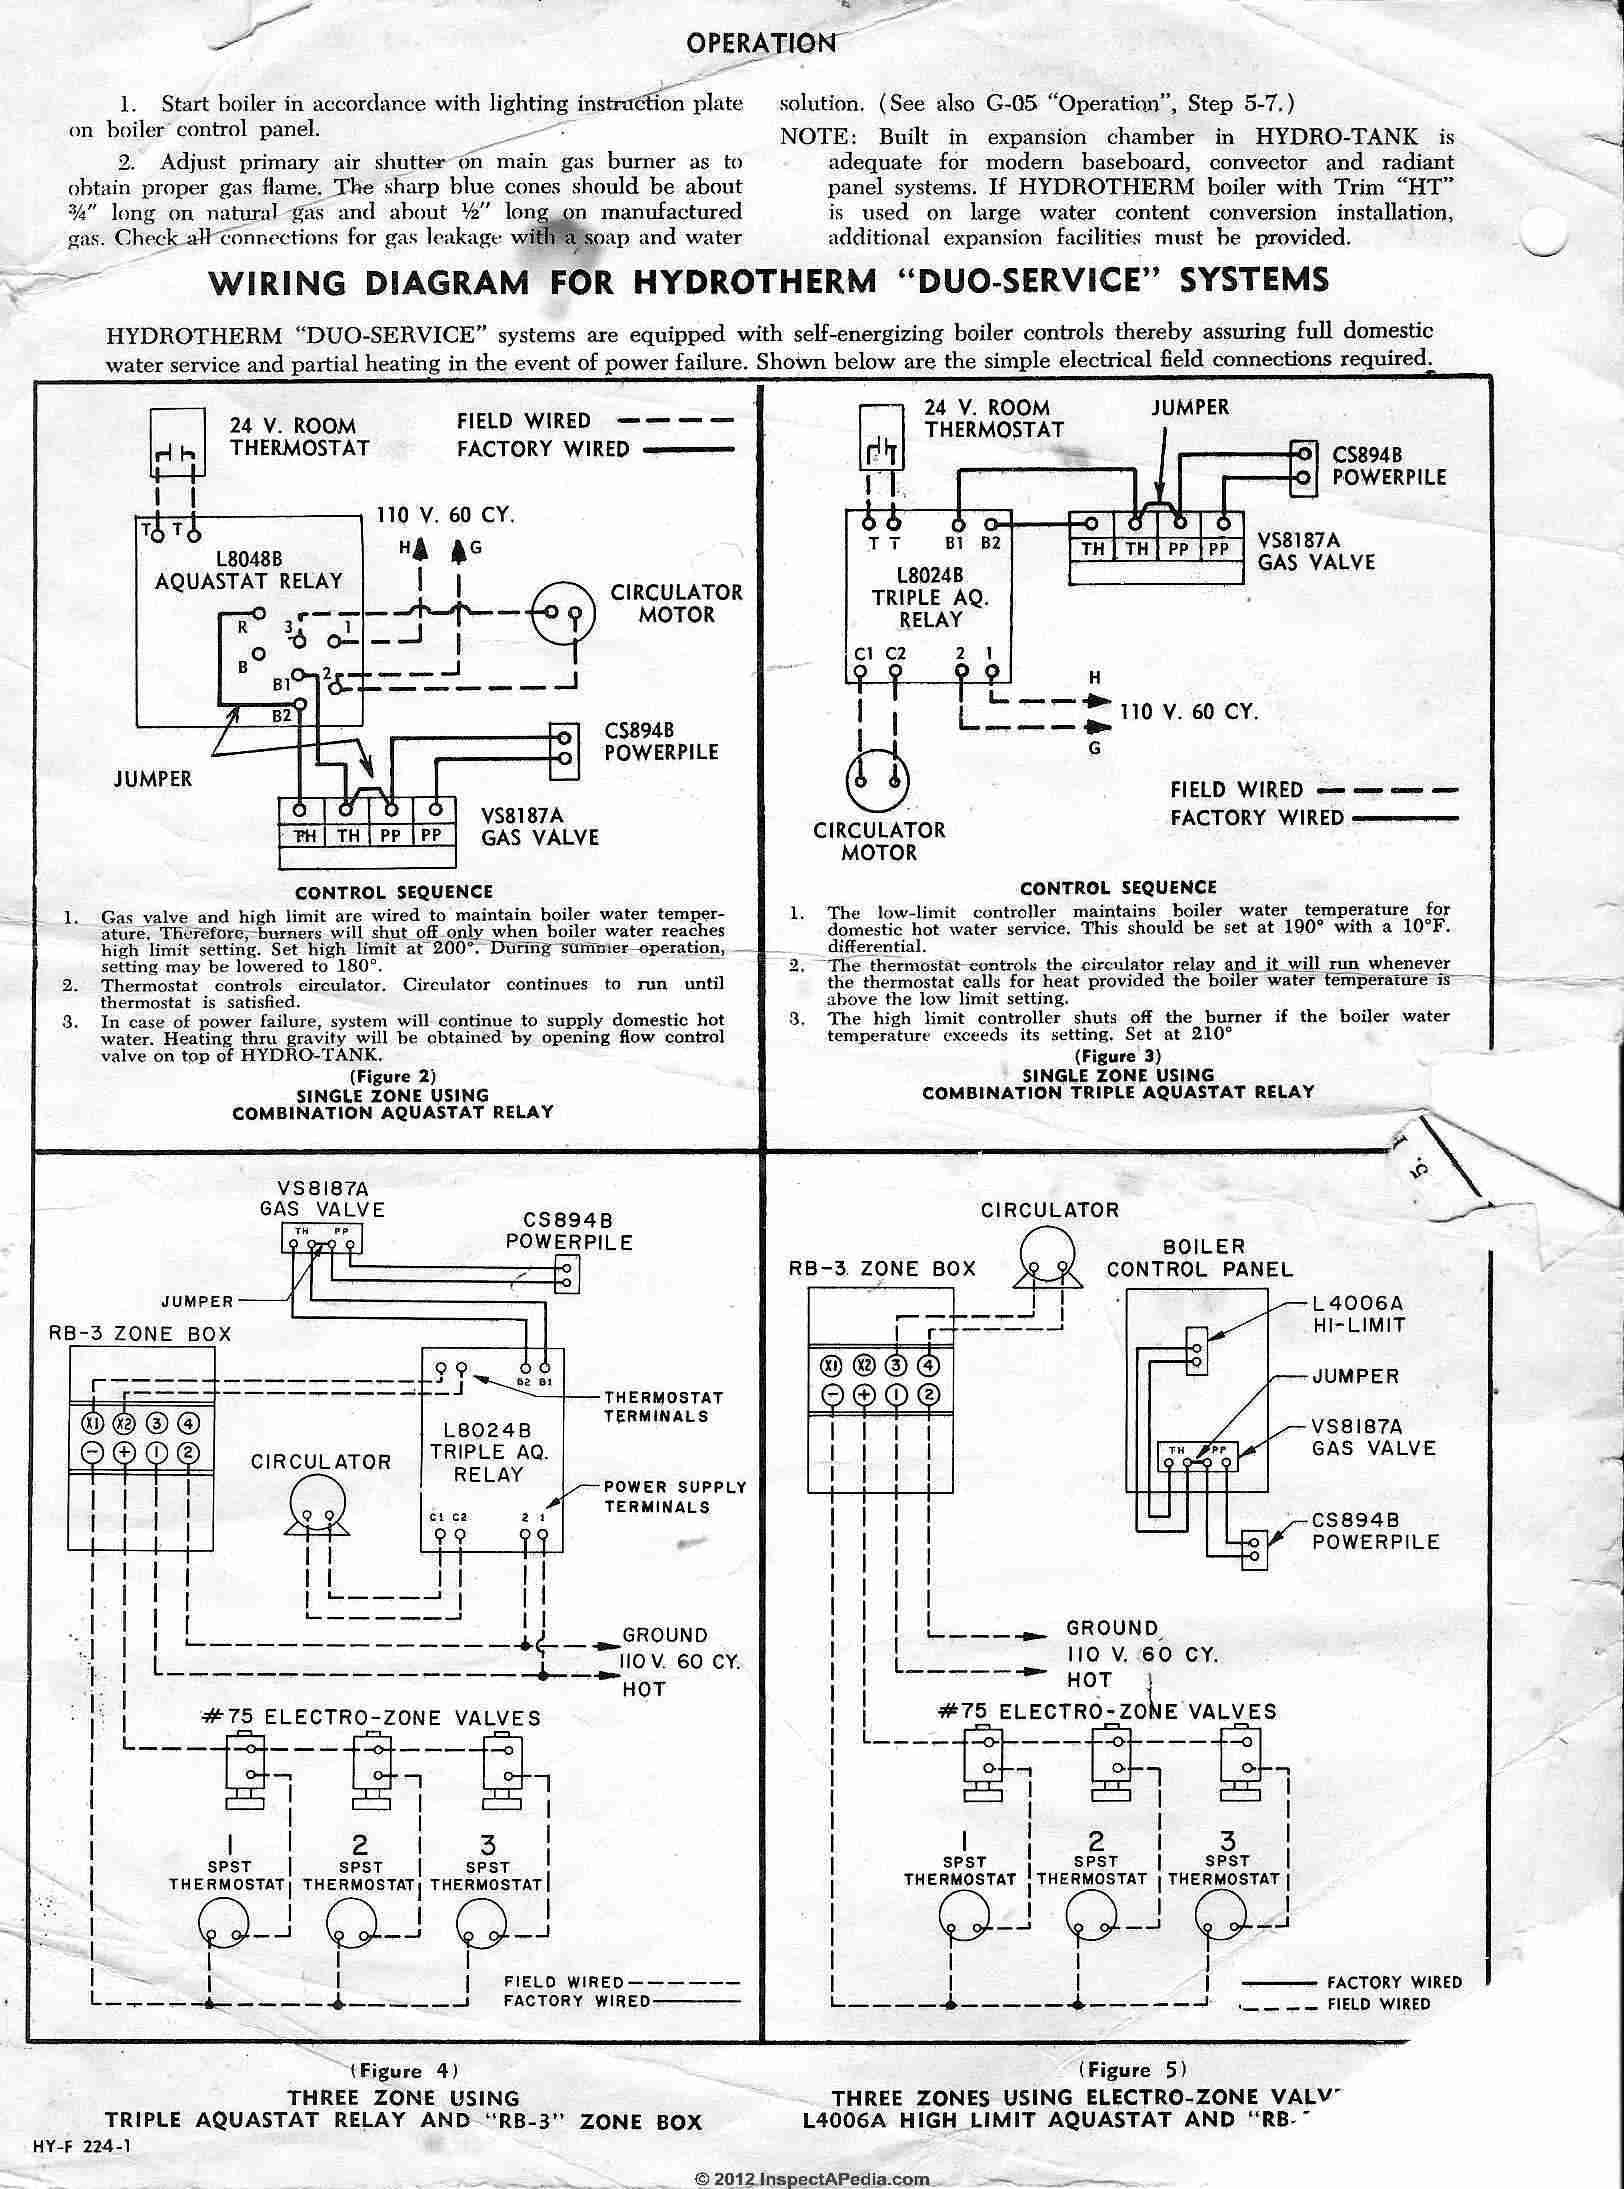 L8024B_Aquastat_0422_DJFcs heating boiler aquastat control diagnosis, troubleshooting, repair amtrol boilermate wiring diagram at gsmportal.co